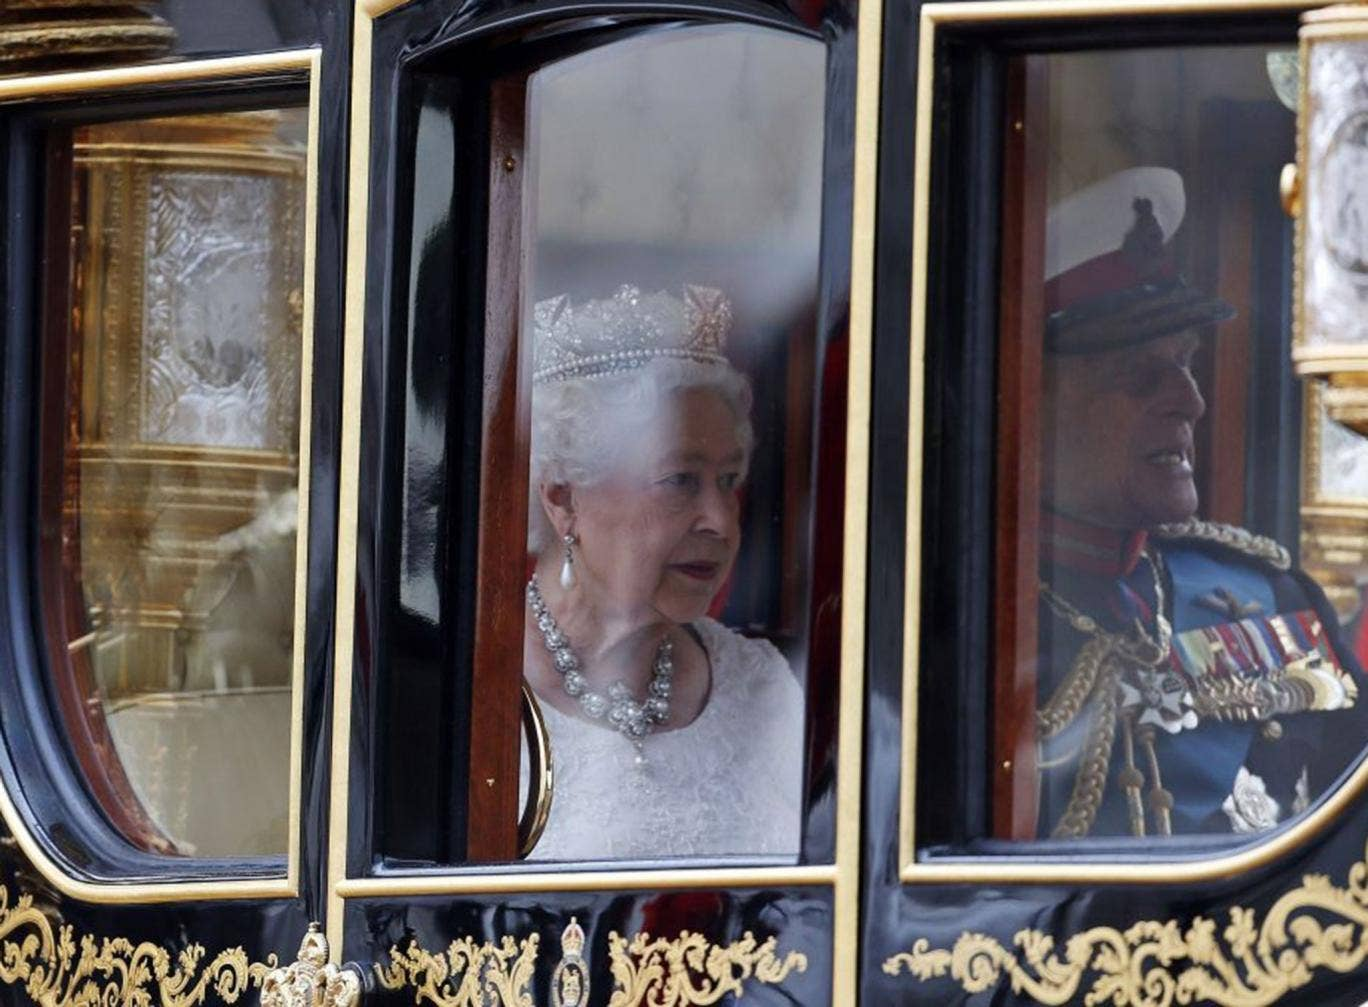 Eleven new Bills were announced by the Queen when she read the Speech in the House of Lords